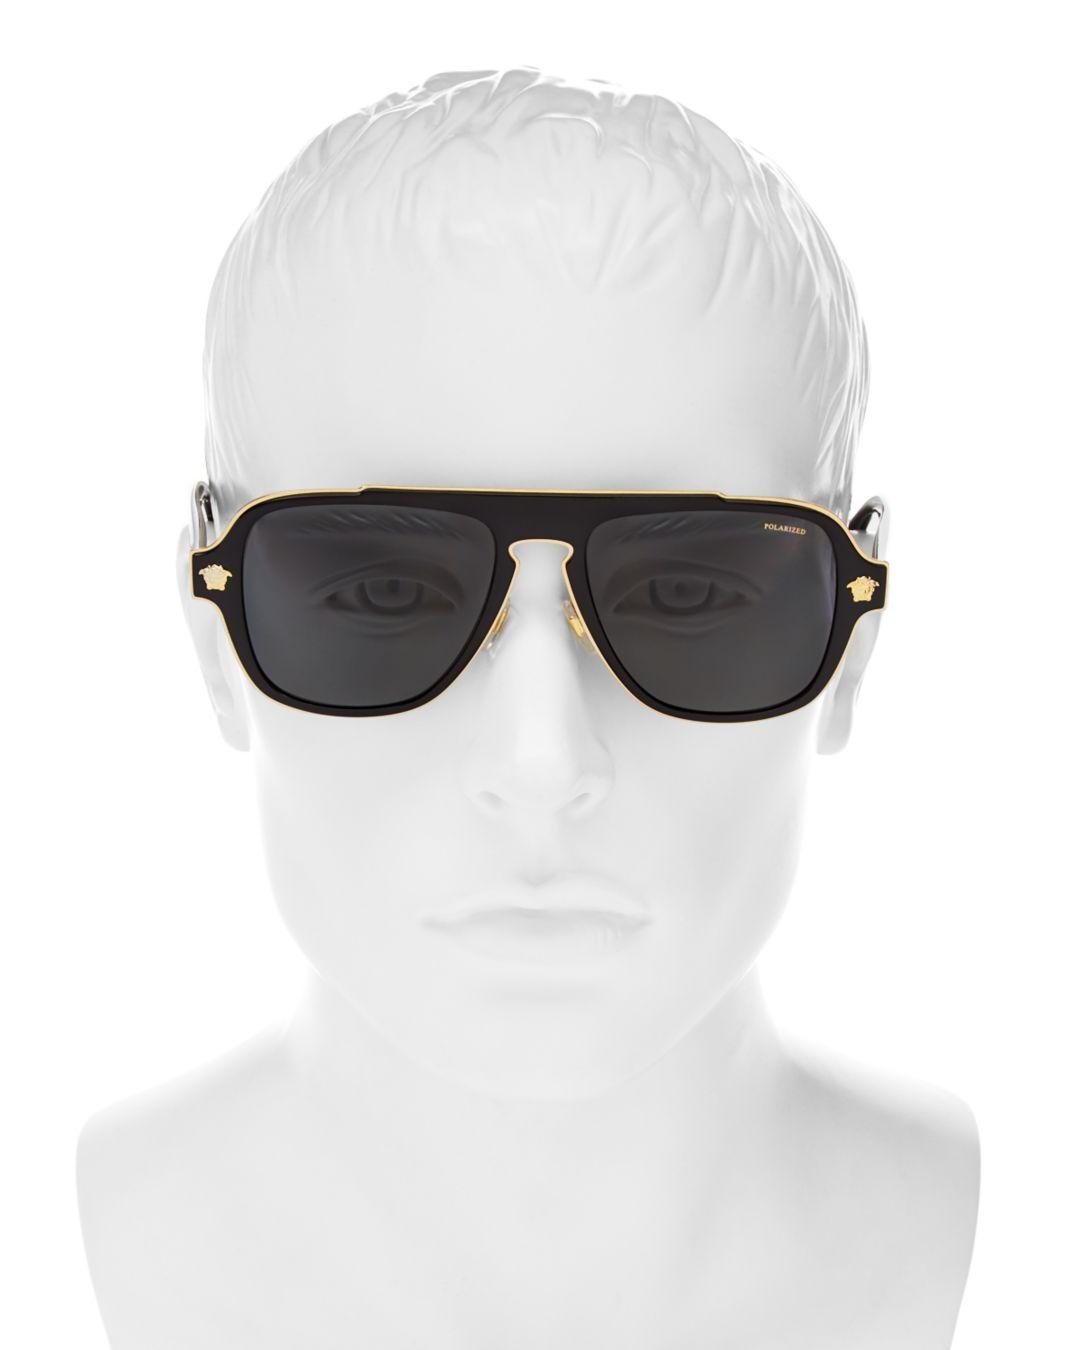 56f71e2e504 Lyst - Bloomingdale s Versace Collection Men s Polarized Flat Top Aviator  Sunglasses